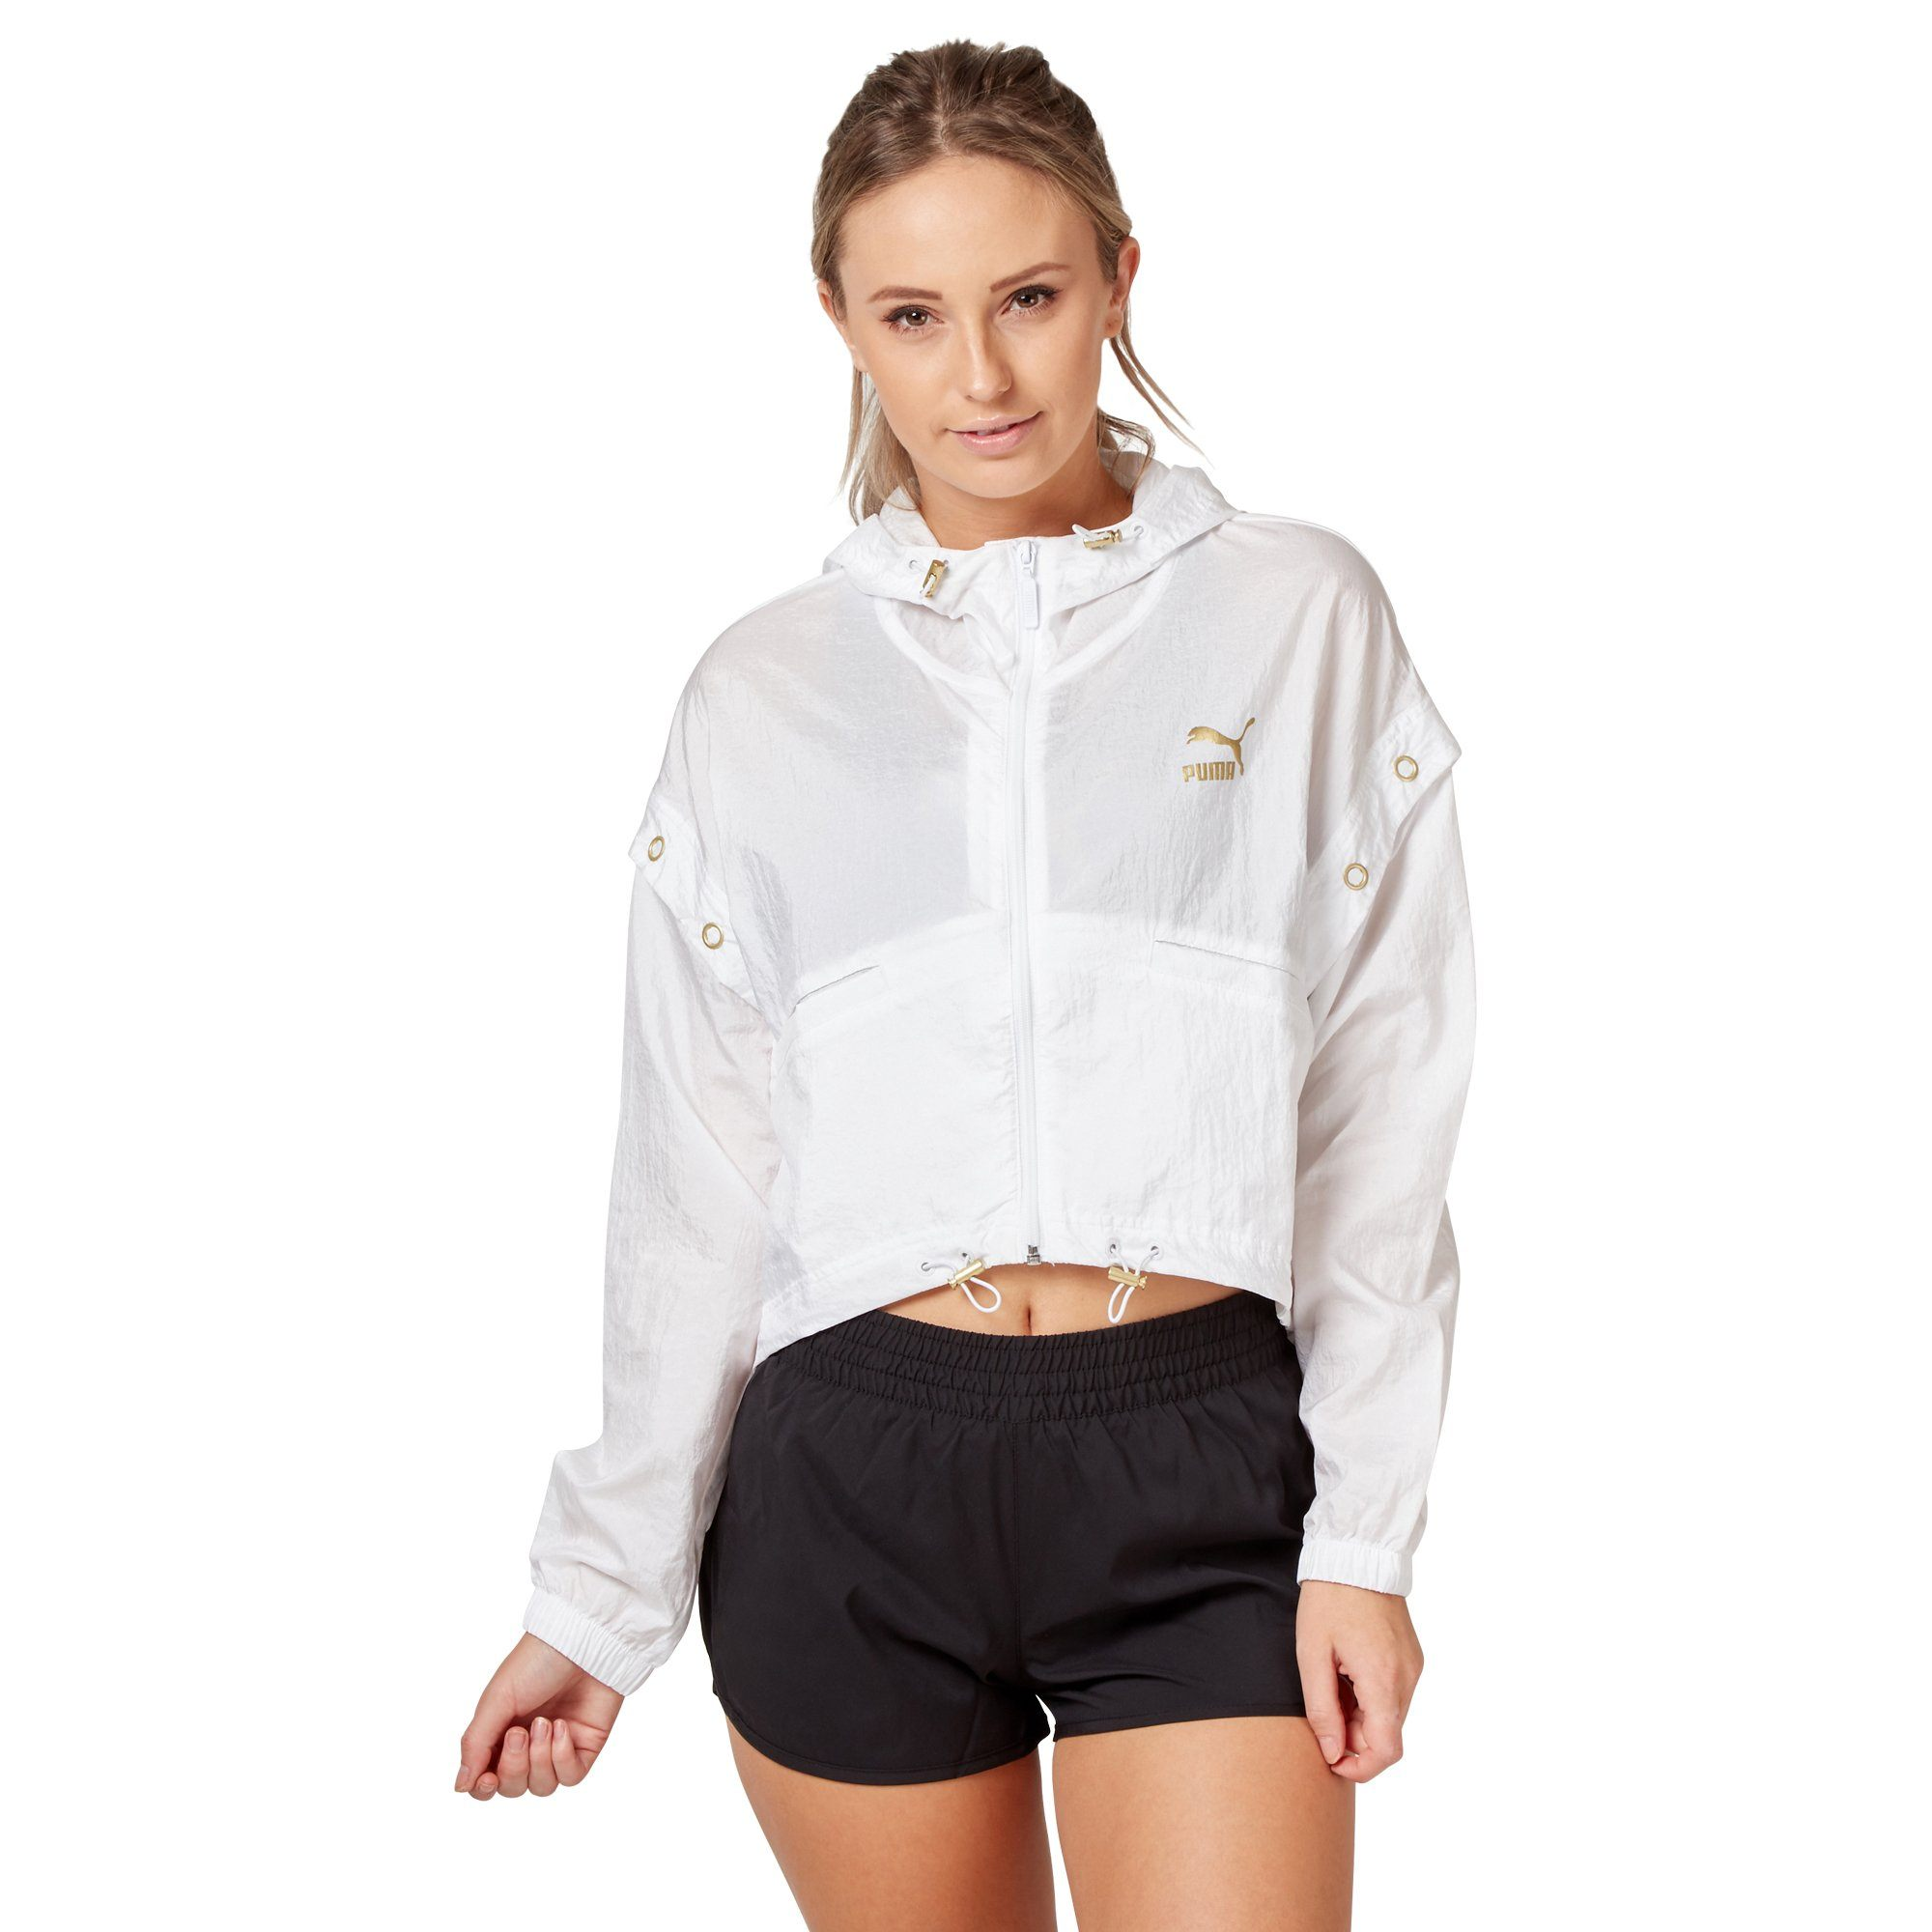 Puma Women's Retro Windrunner Jacket - White Apparel Puma  (2122607951931)